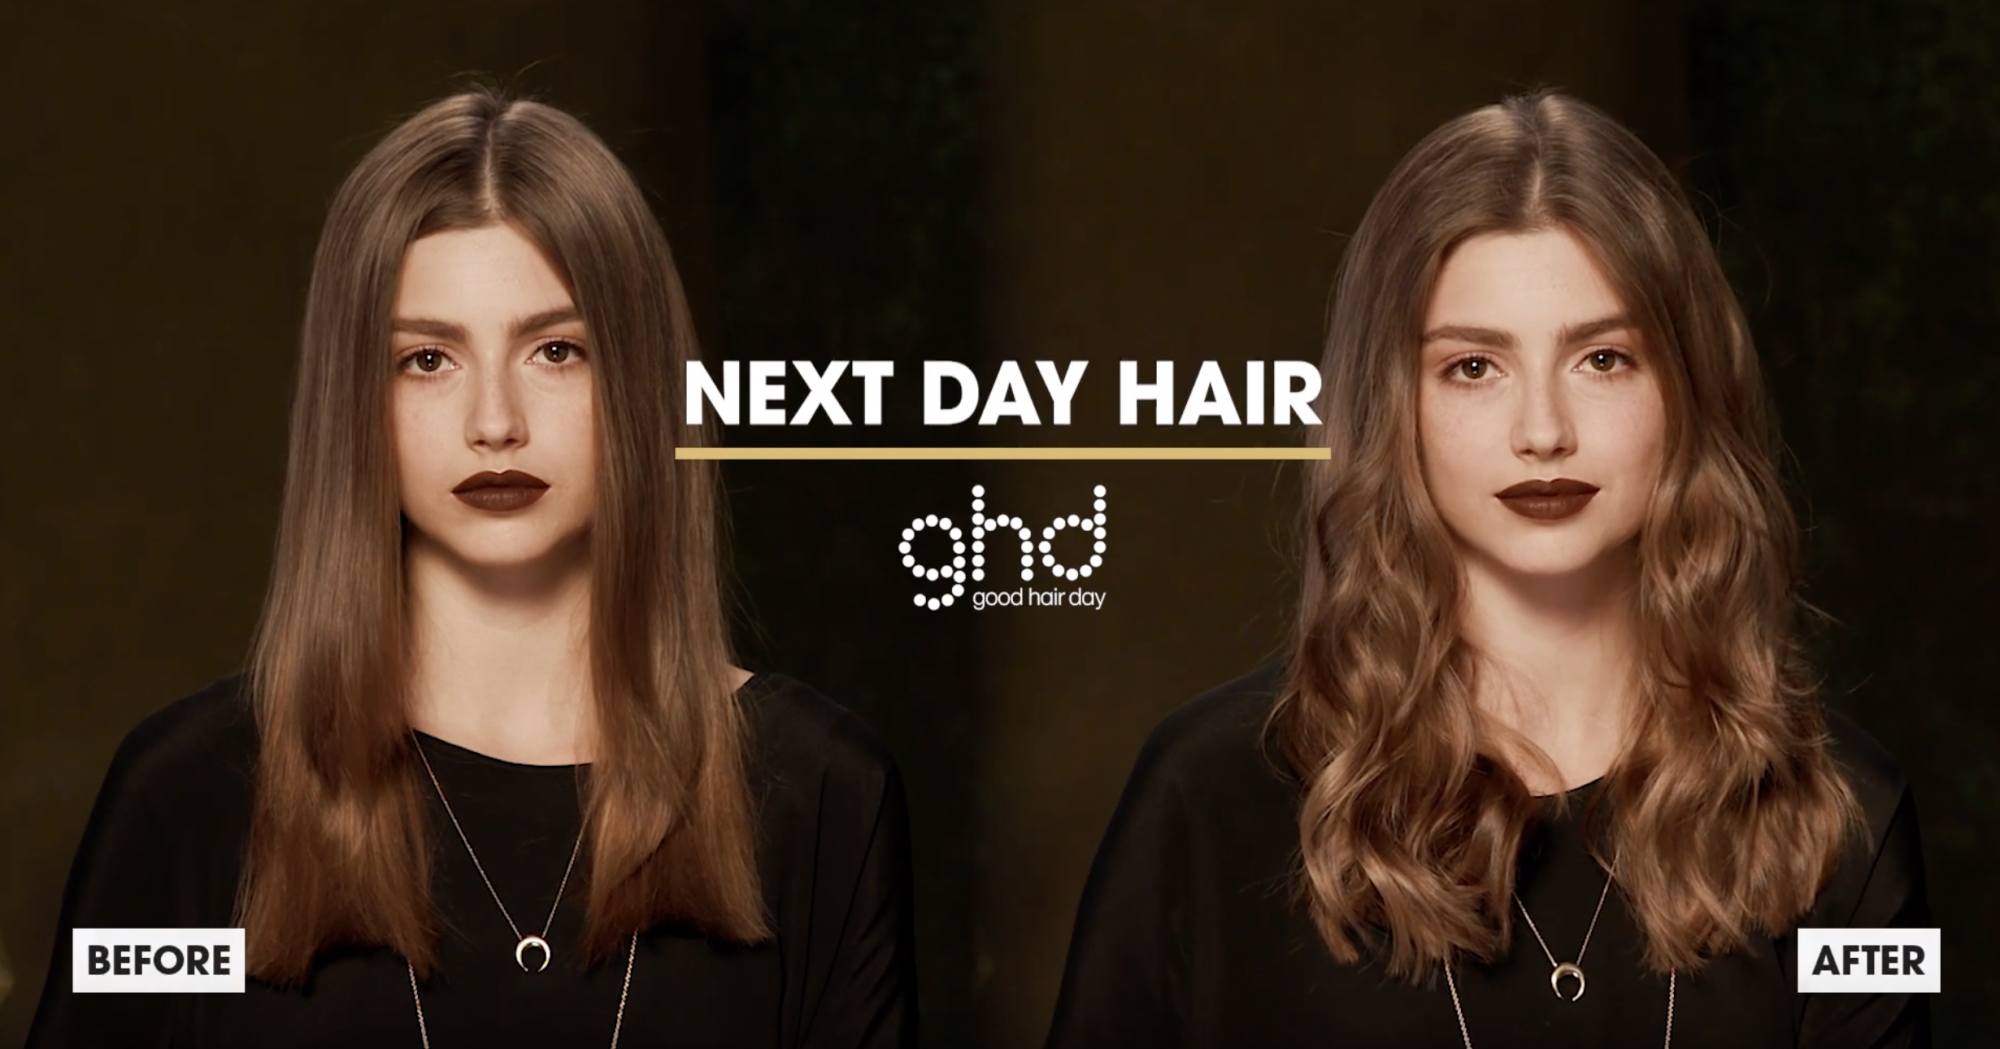 ghd Oracle Curler Before After Next Day Waves Model 2019